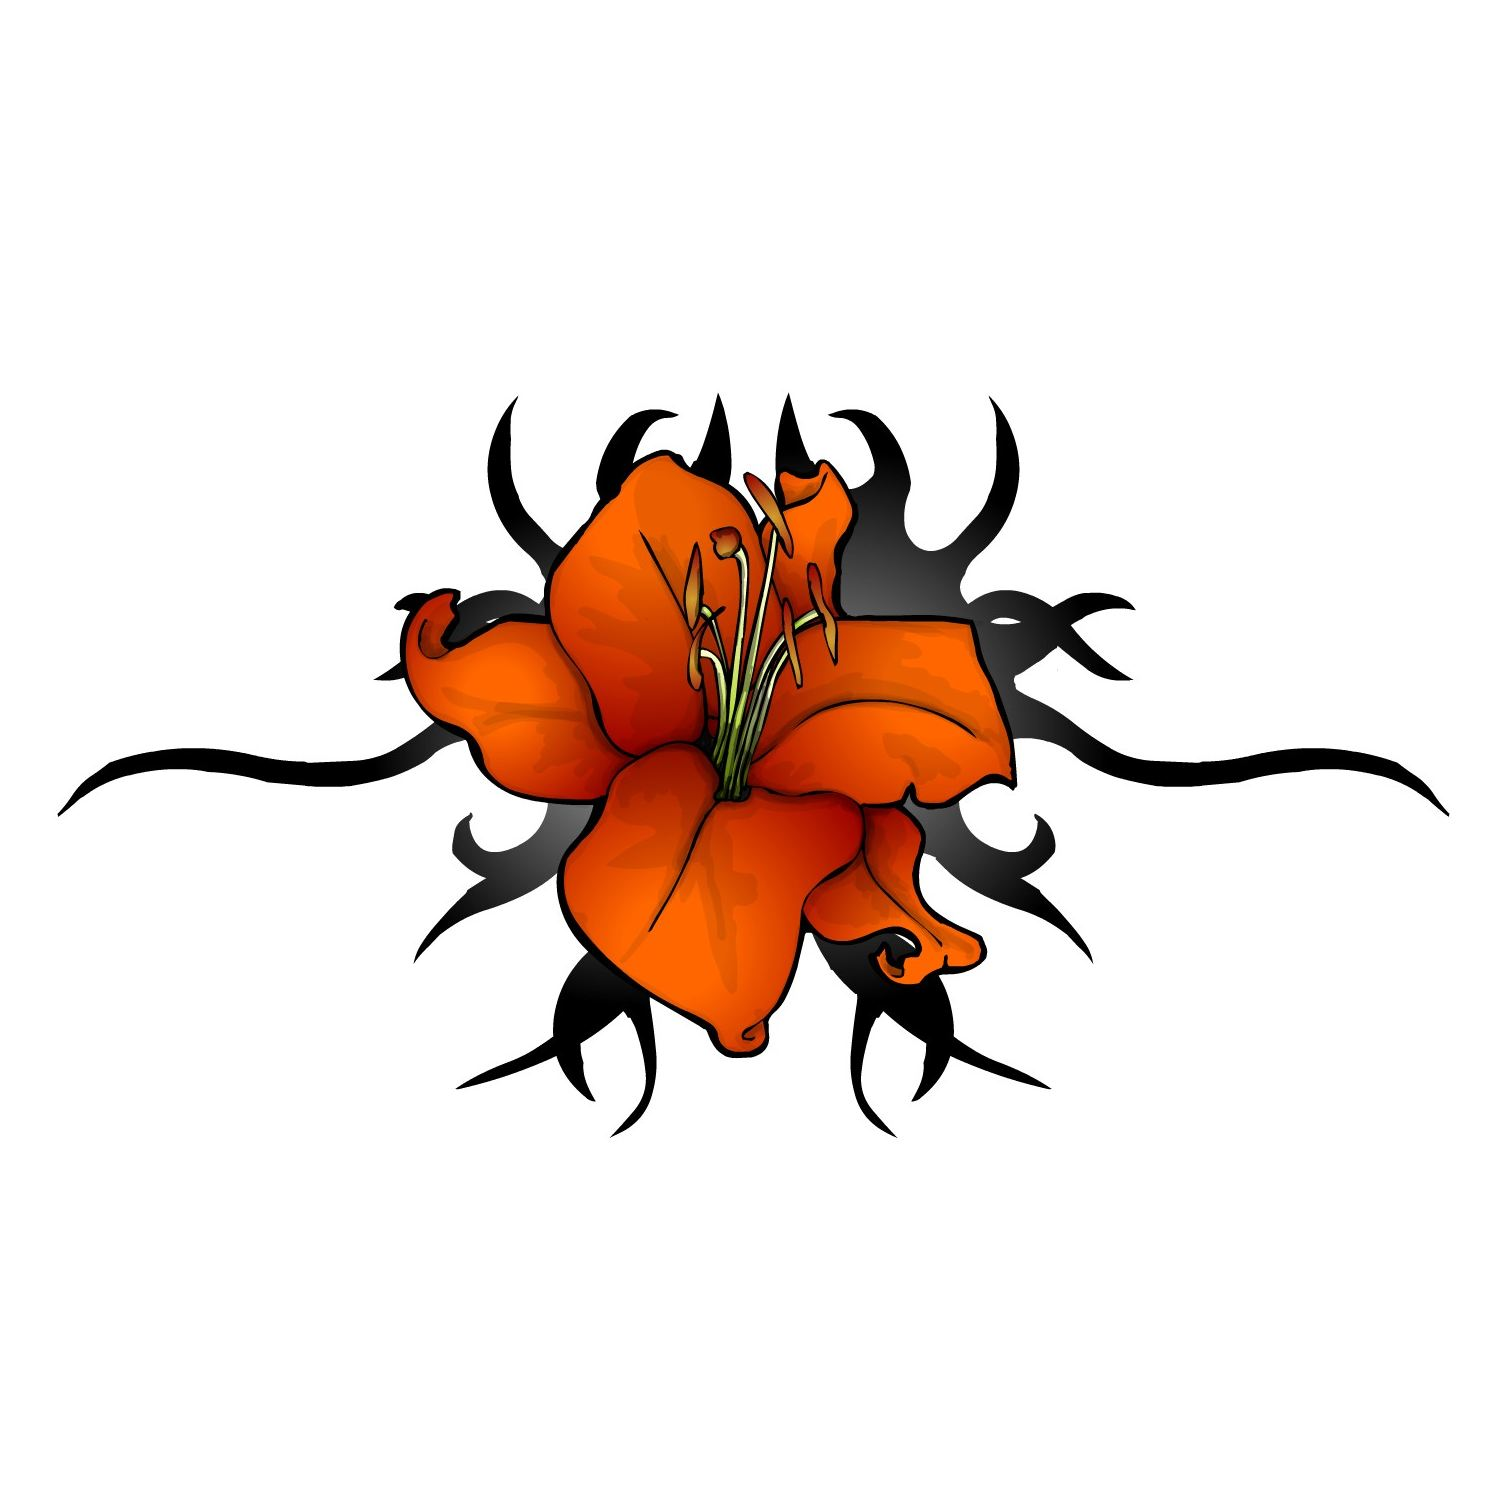 lily flower tattoo ideas clipart best. Black Bedroom Furniture Sets. Home Design Ideas